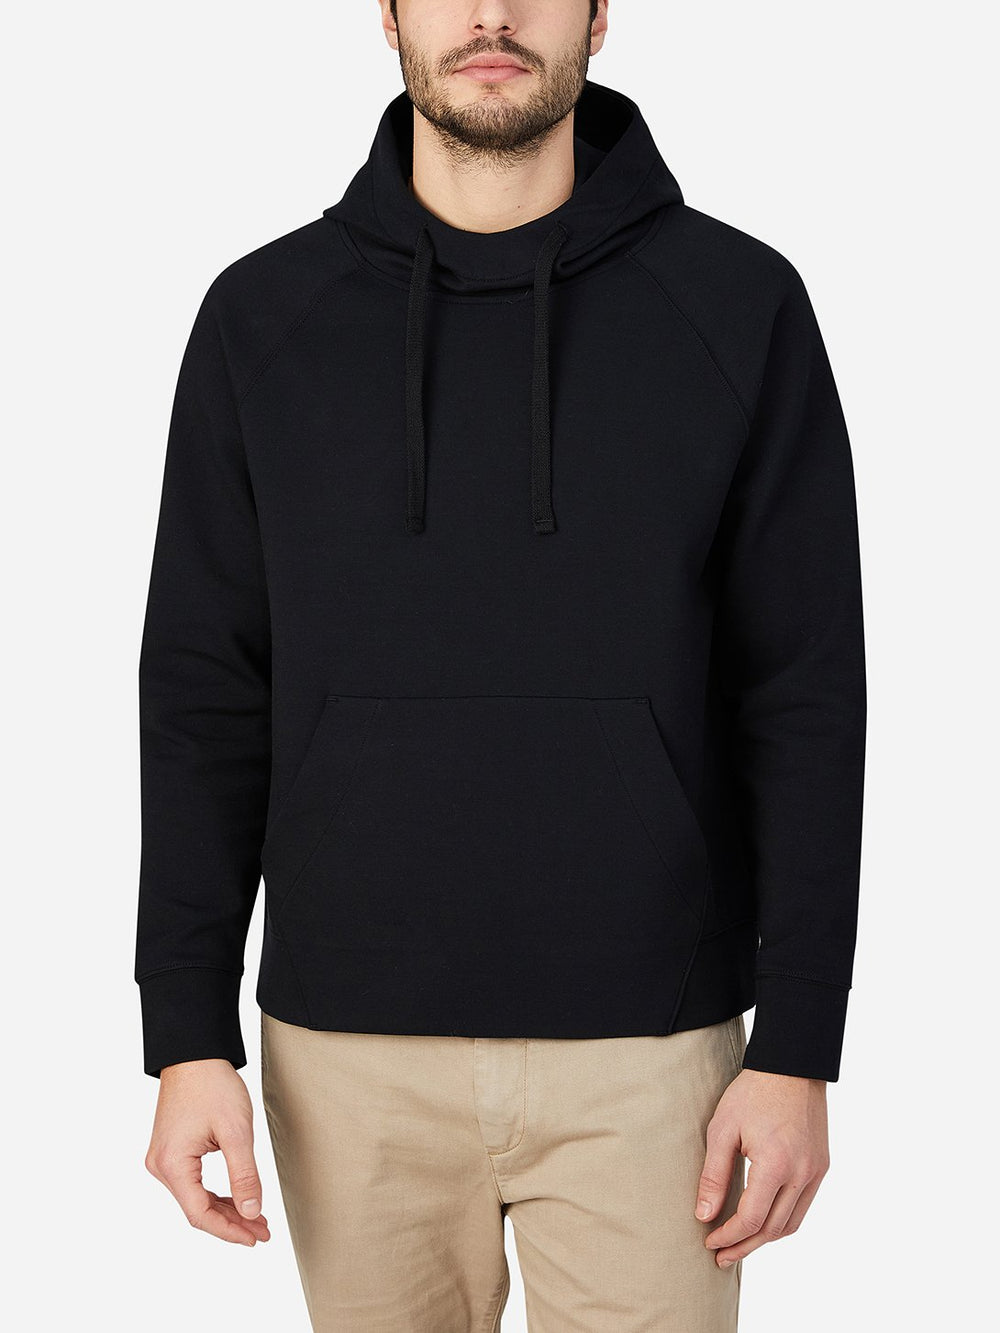 JET BLACK hoodie for men ons clothing rover hoodie black friday deals